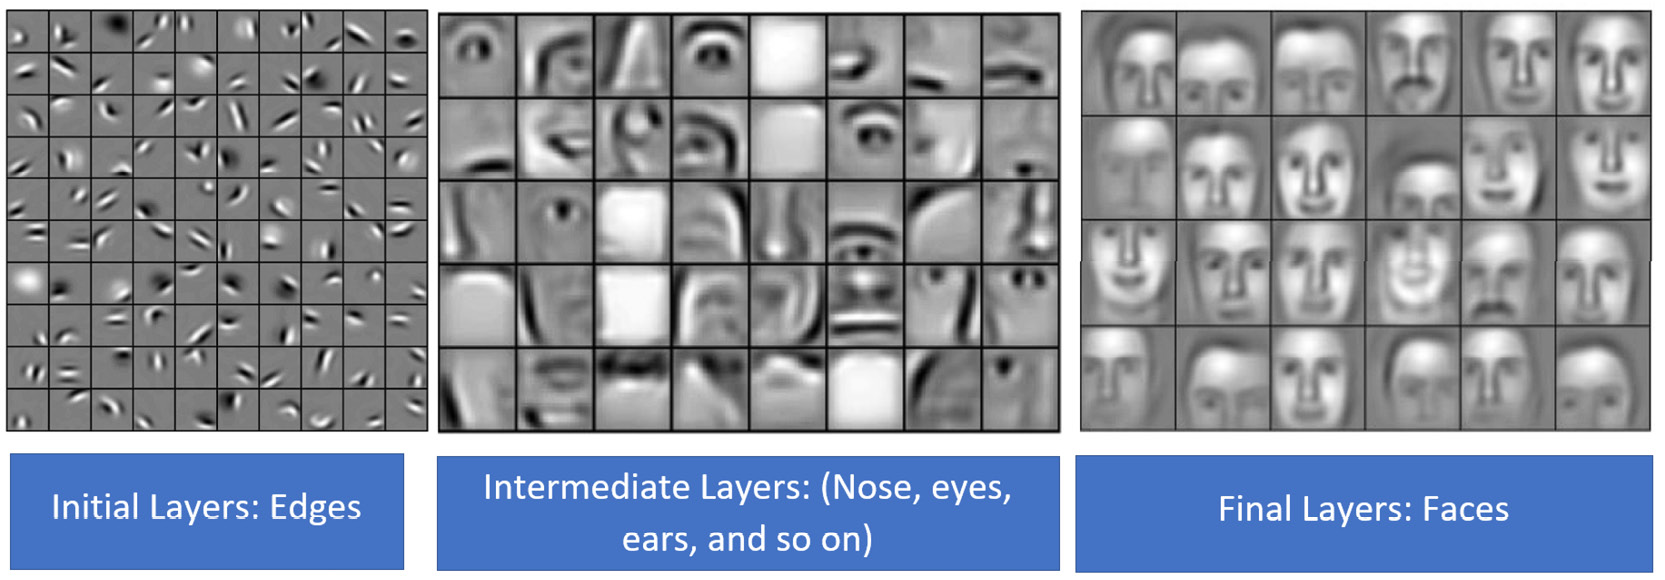 Figure 1.3: Deep learning model for detecting faces